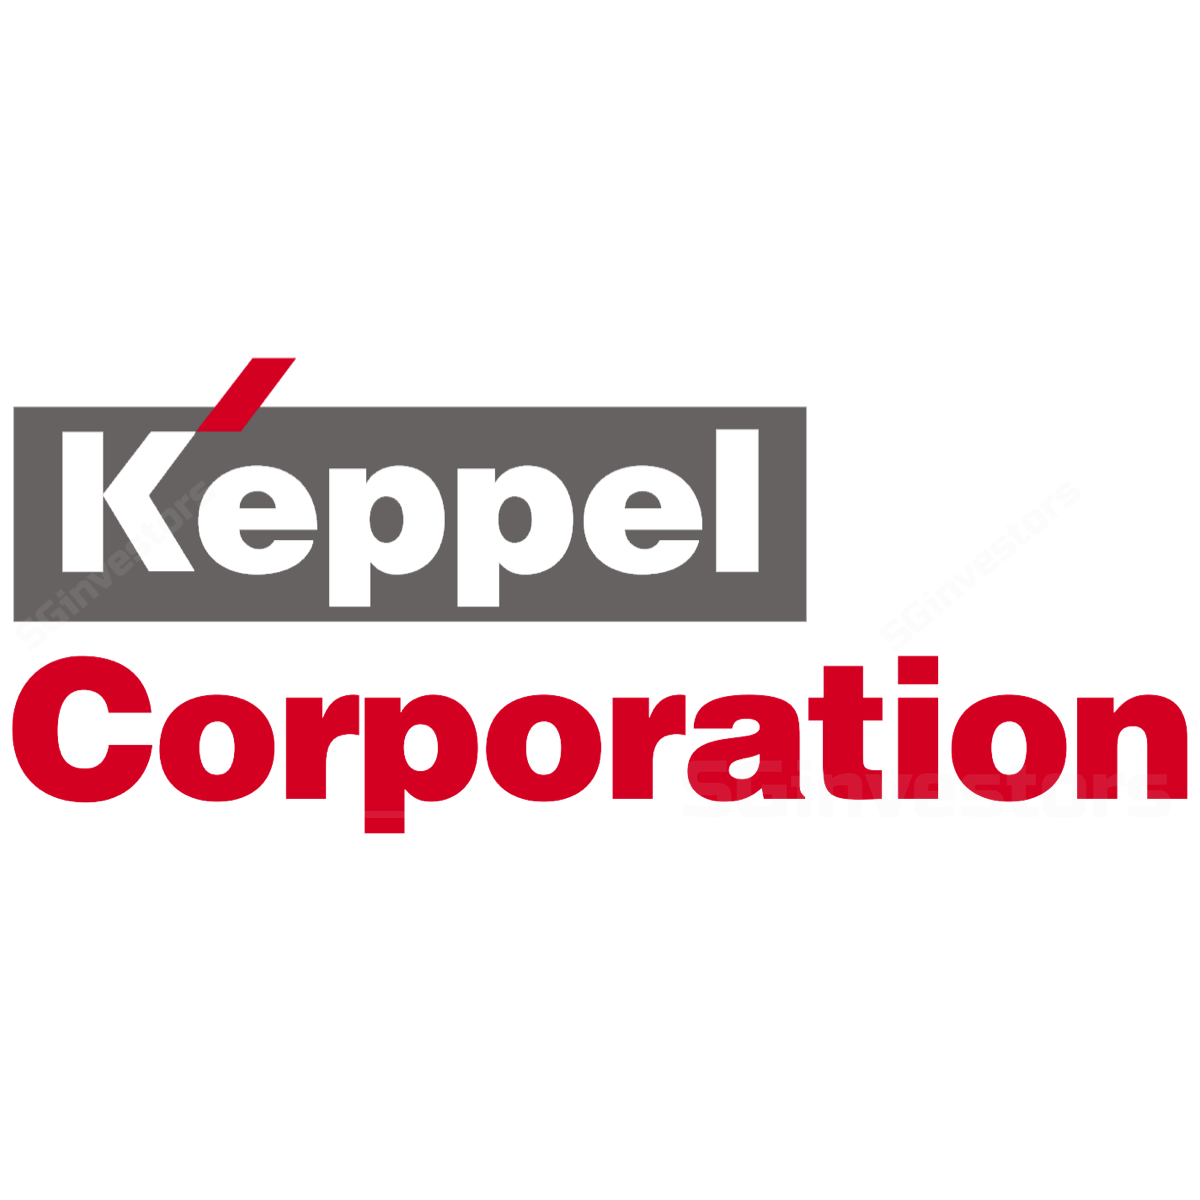 Keppel Corporation - CIMB Research 2017-04-20: 1Q17 Divestment mode